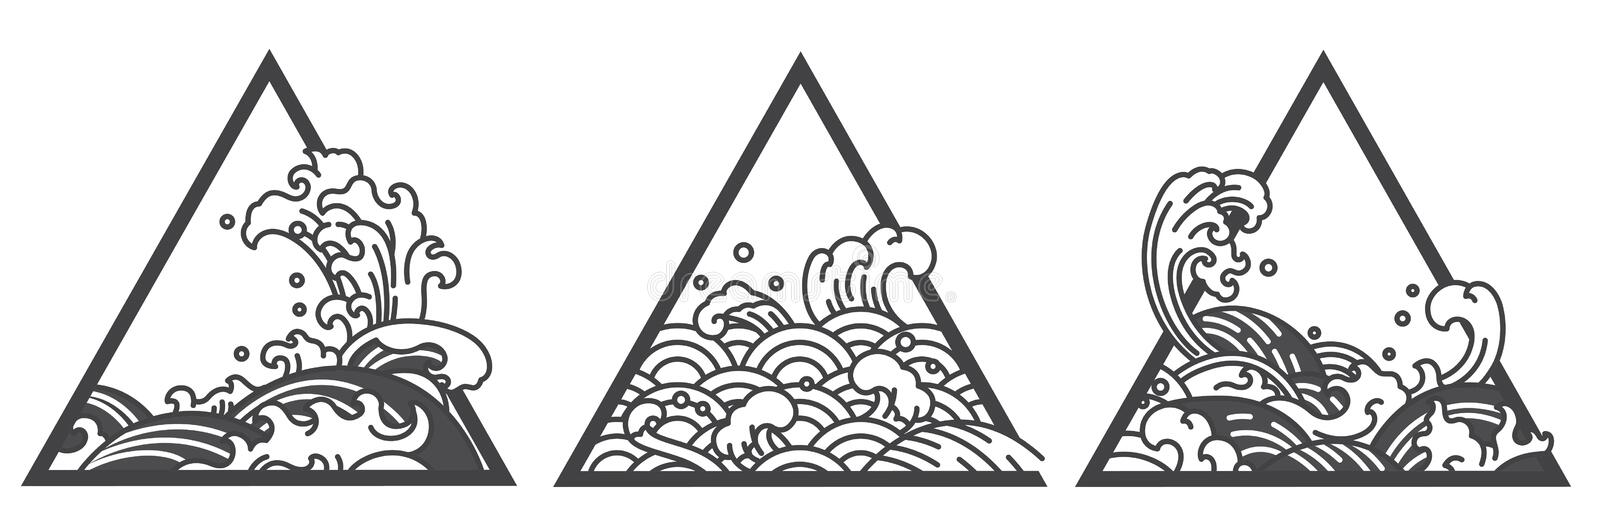 Japan water wave triangle tattoo vector illustration